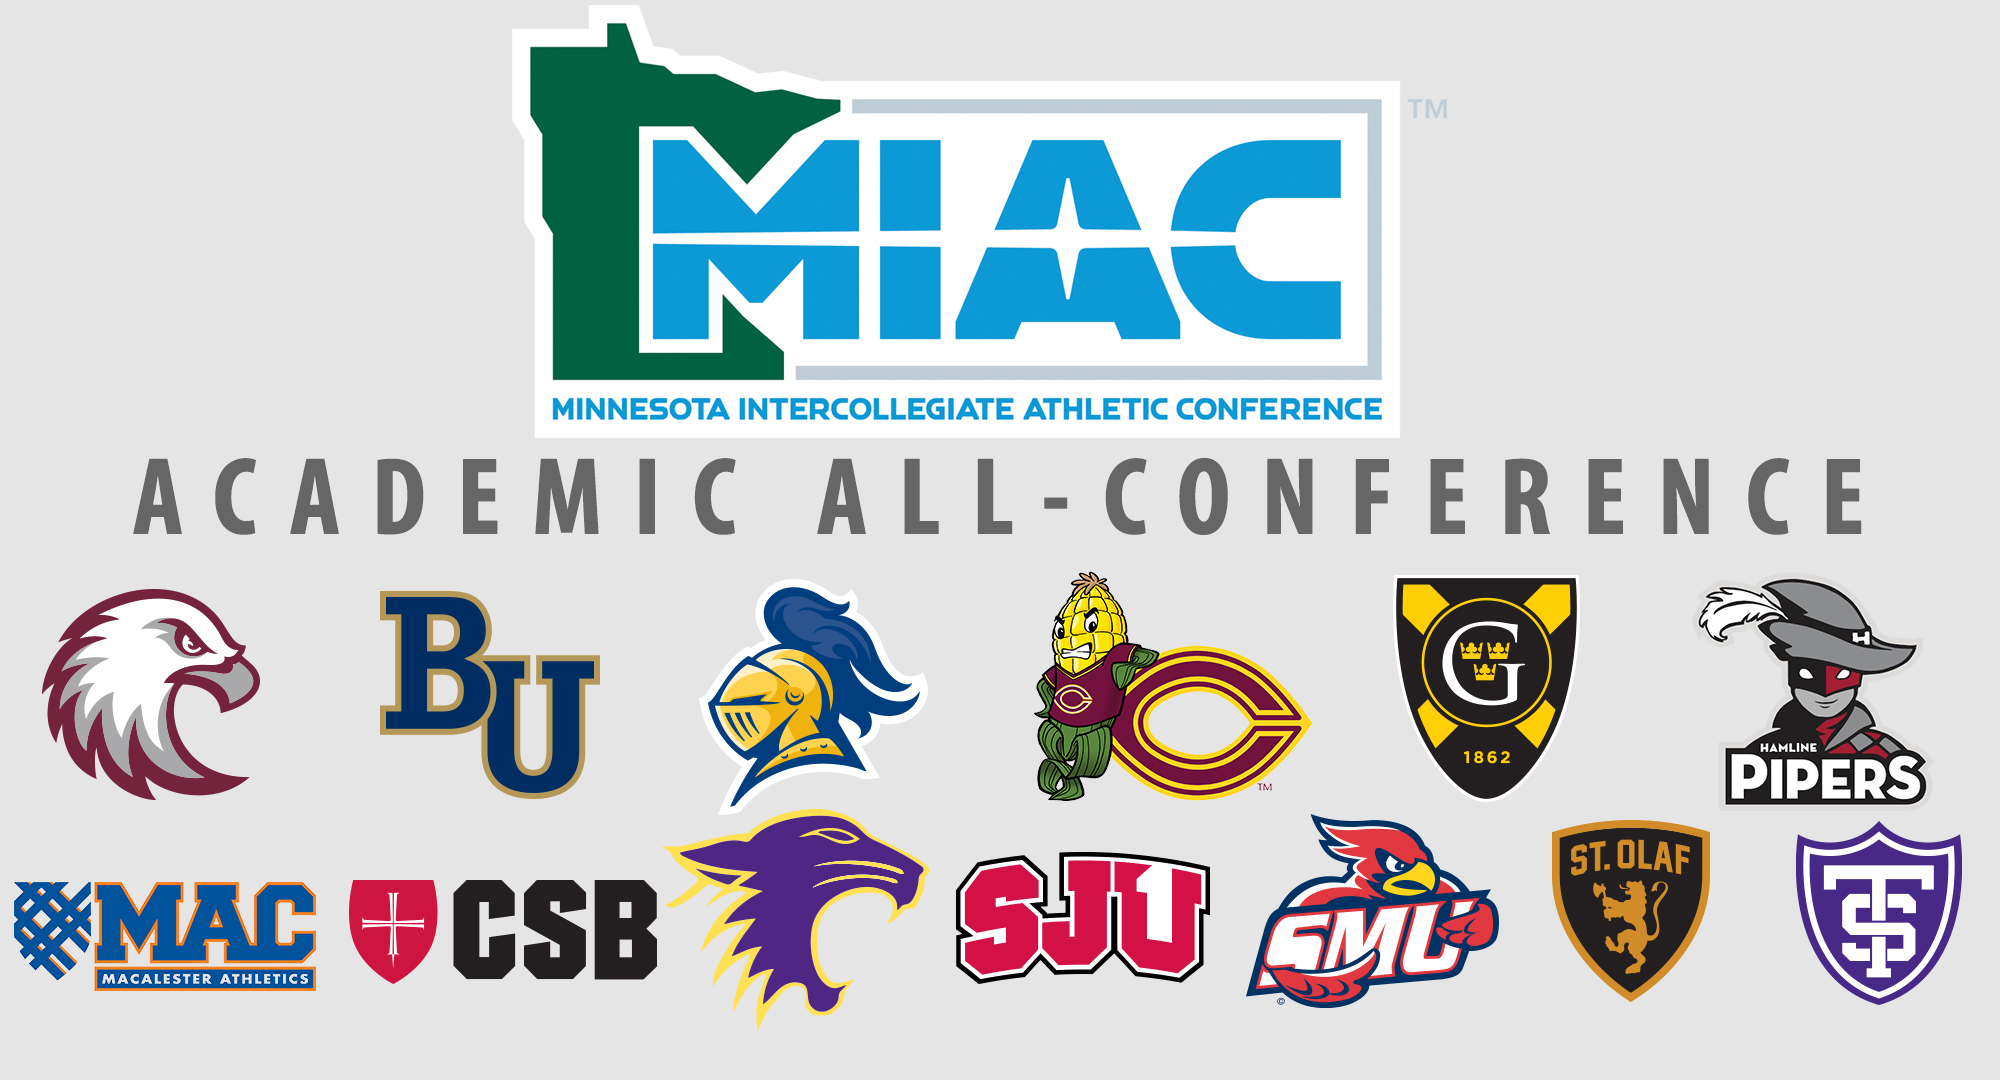 Concordia had 56 winter/sports student/athletes earn MIAC Academic All-Conference honors.